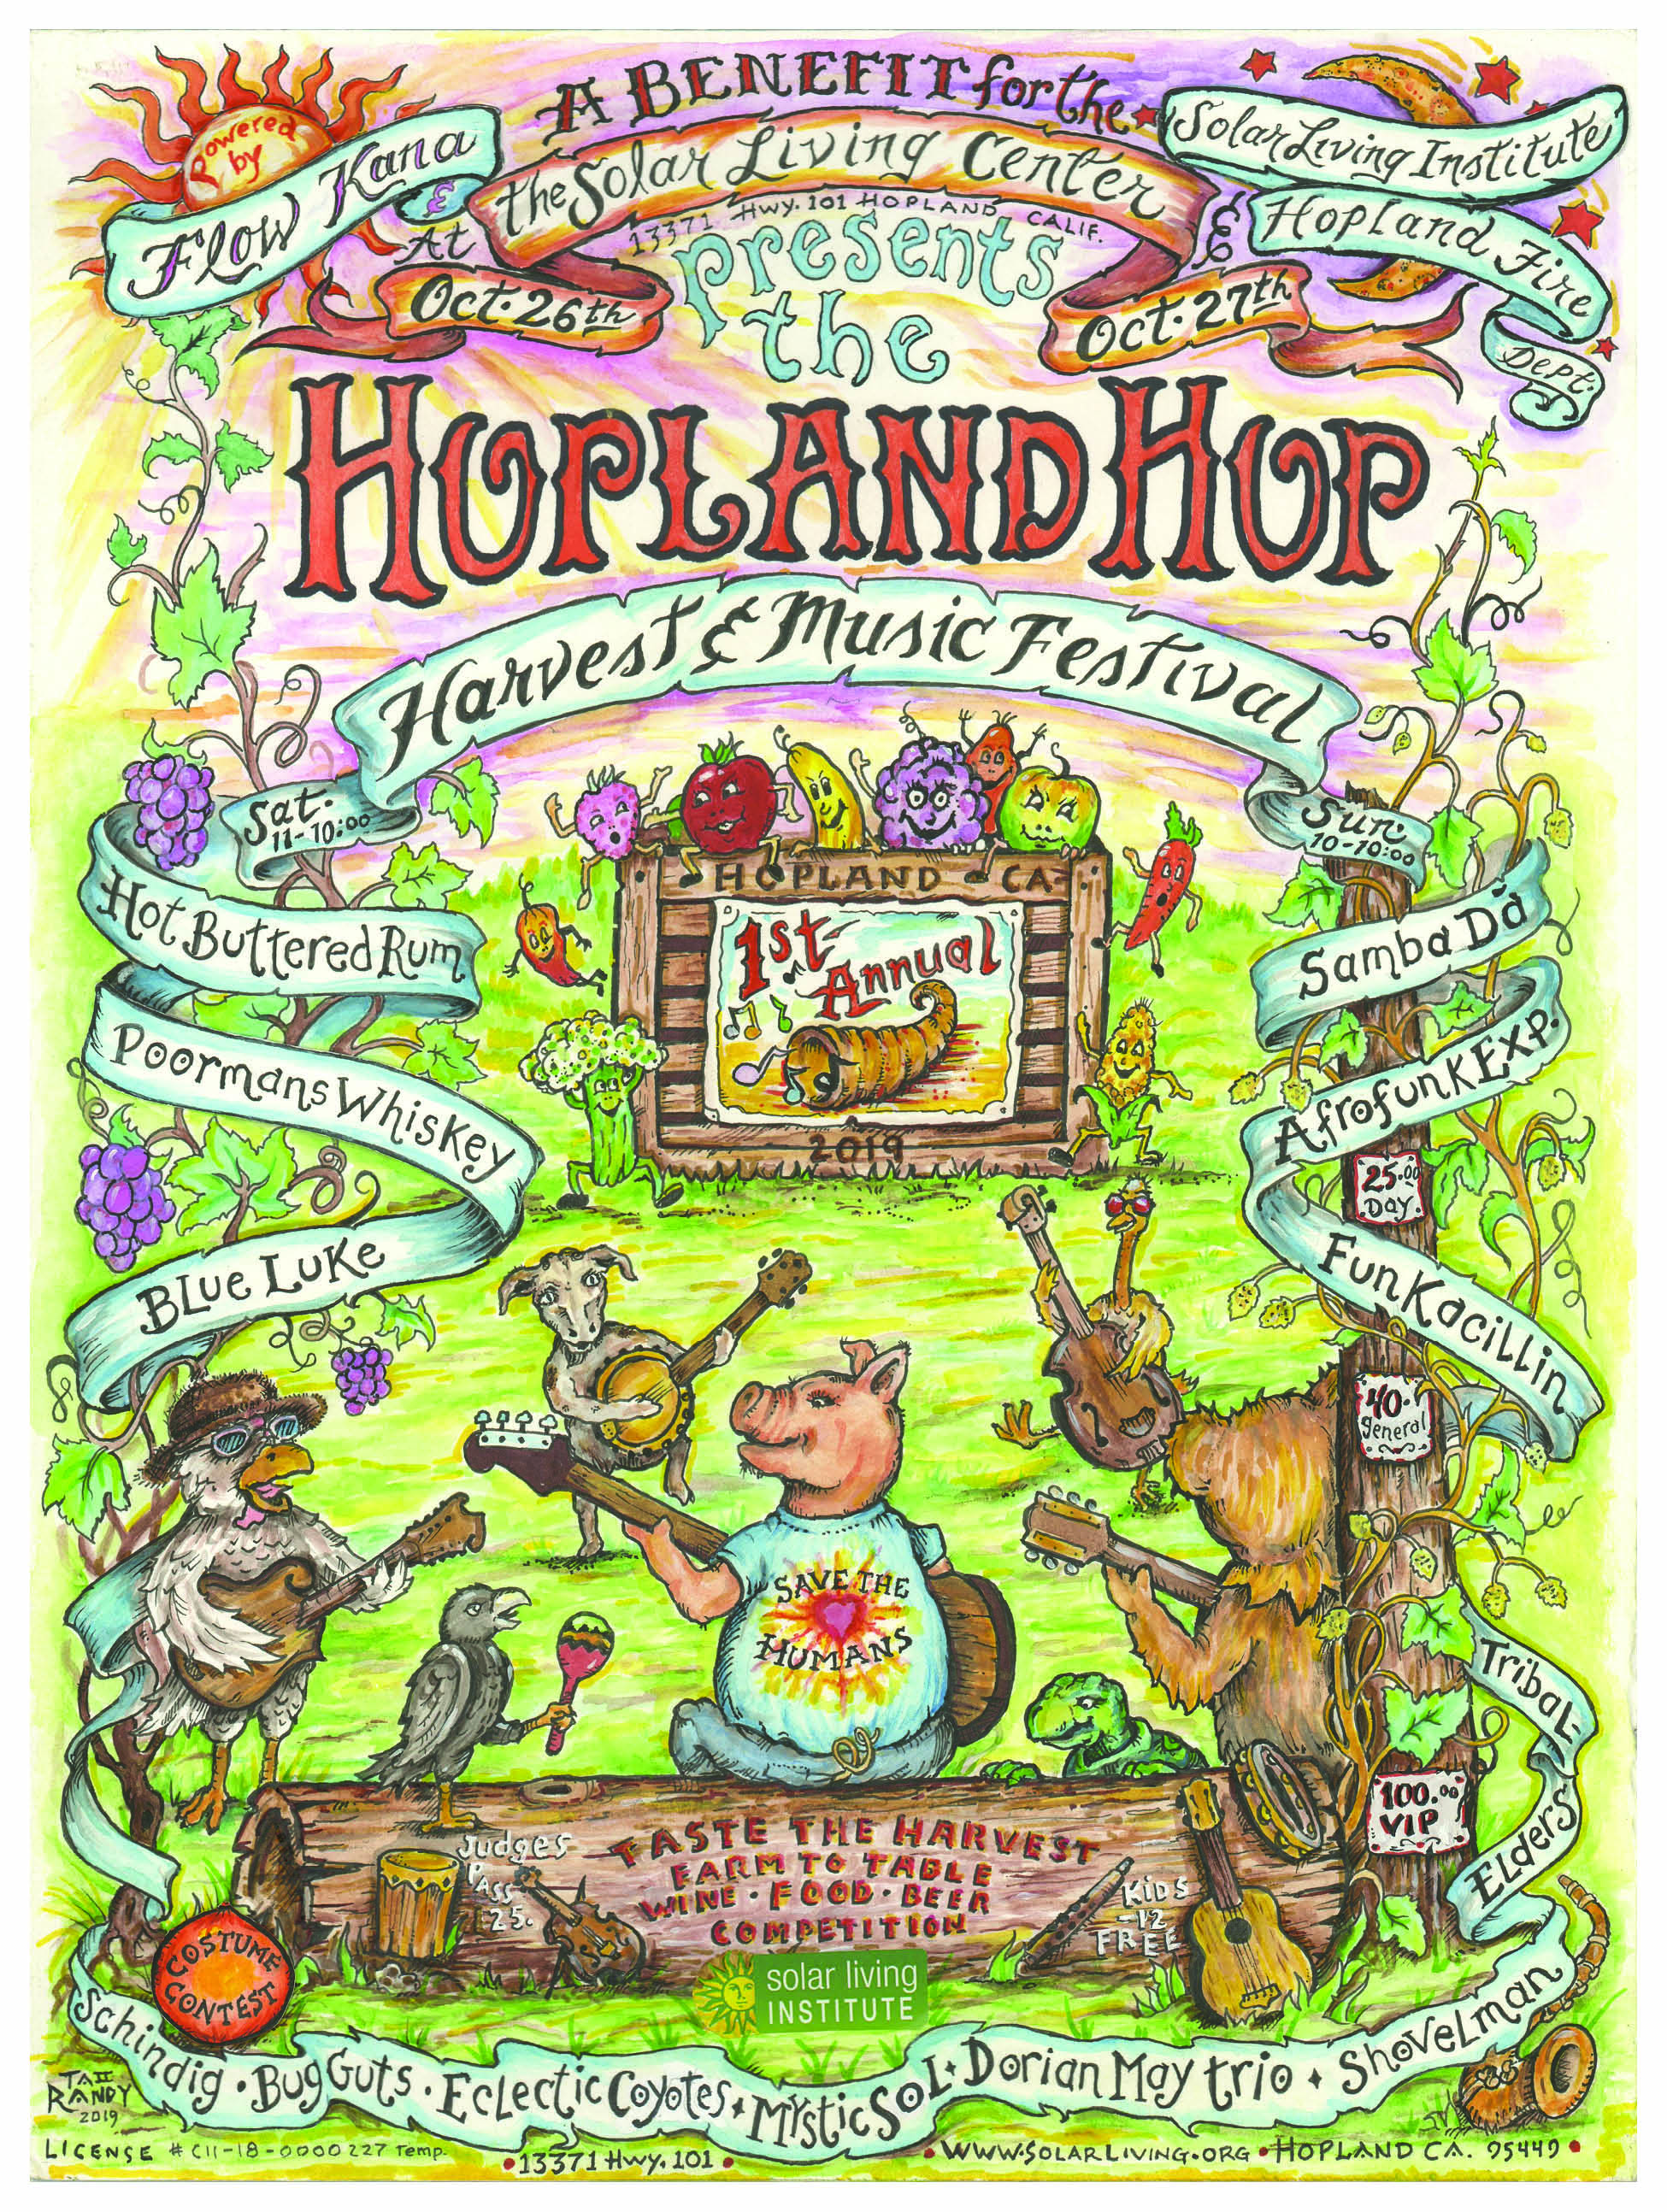 Announcing the The Hopland Hop - Harvest & Music Festival